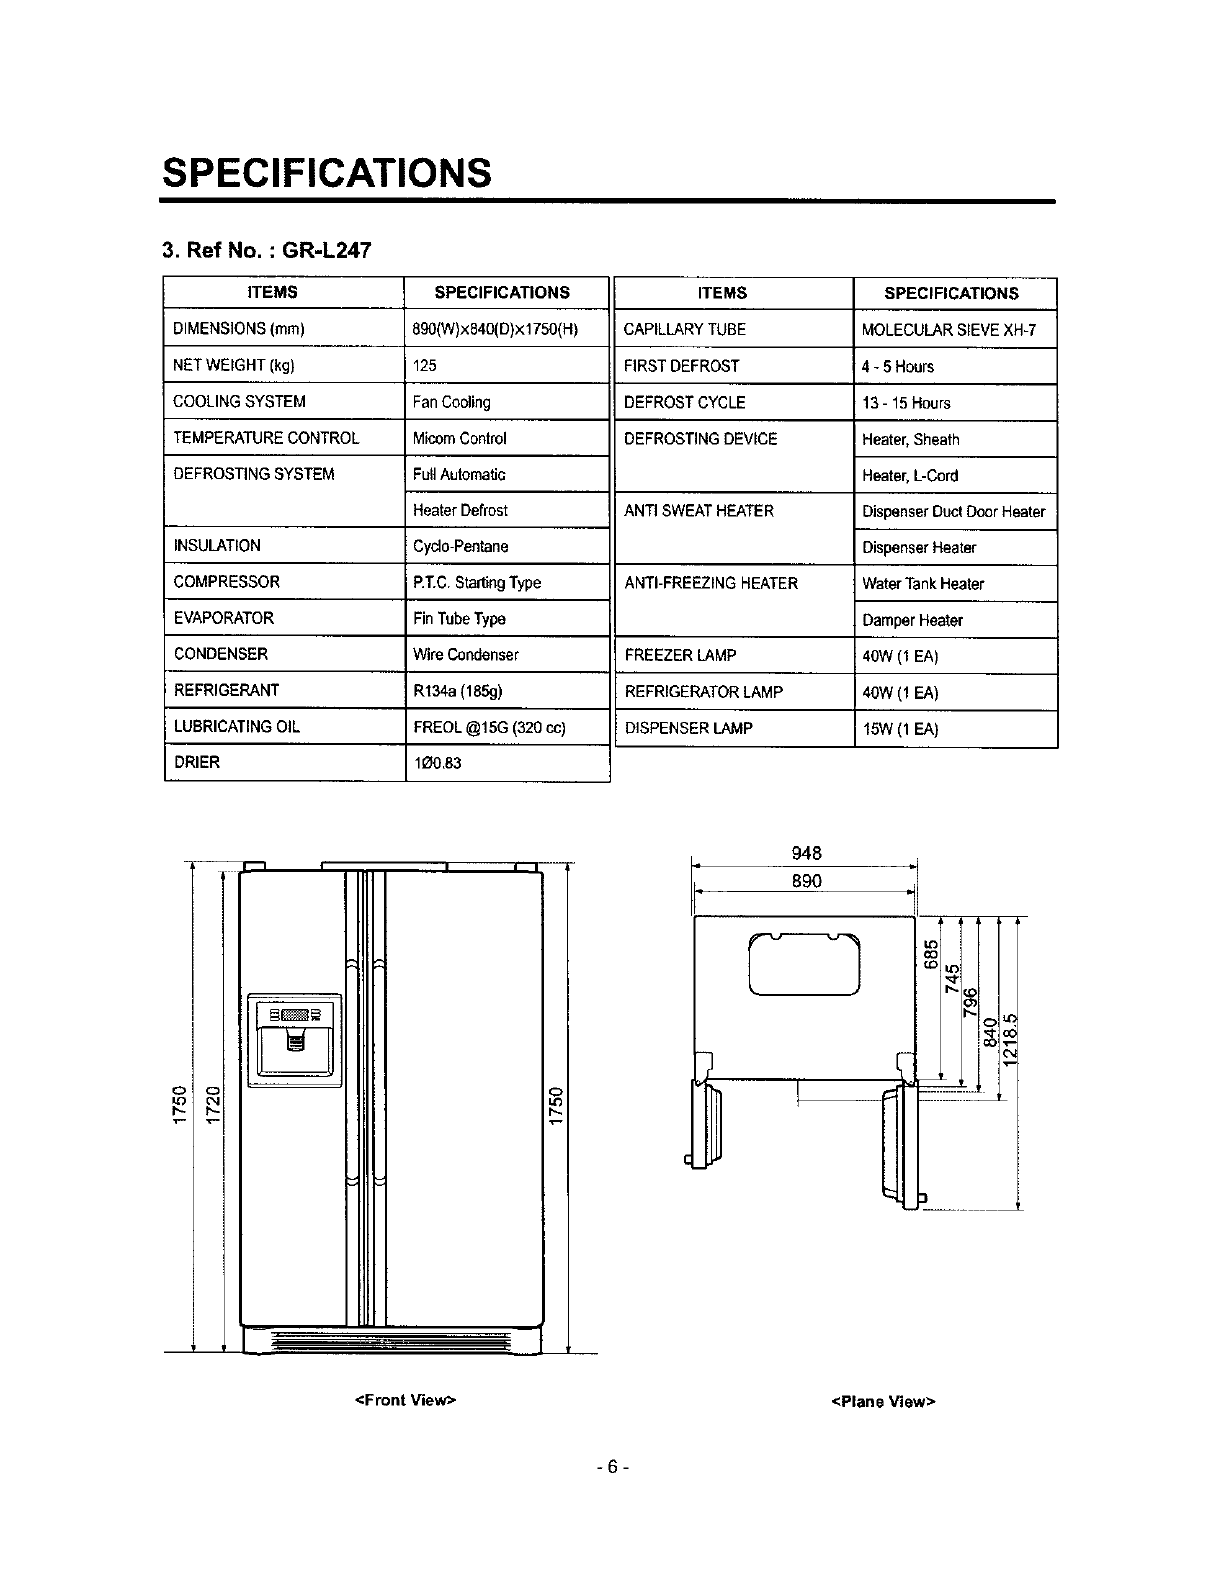 Lg Lrspc T User Manual Refrigerator Manuals And Guides